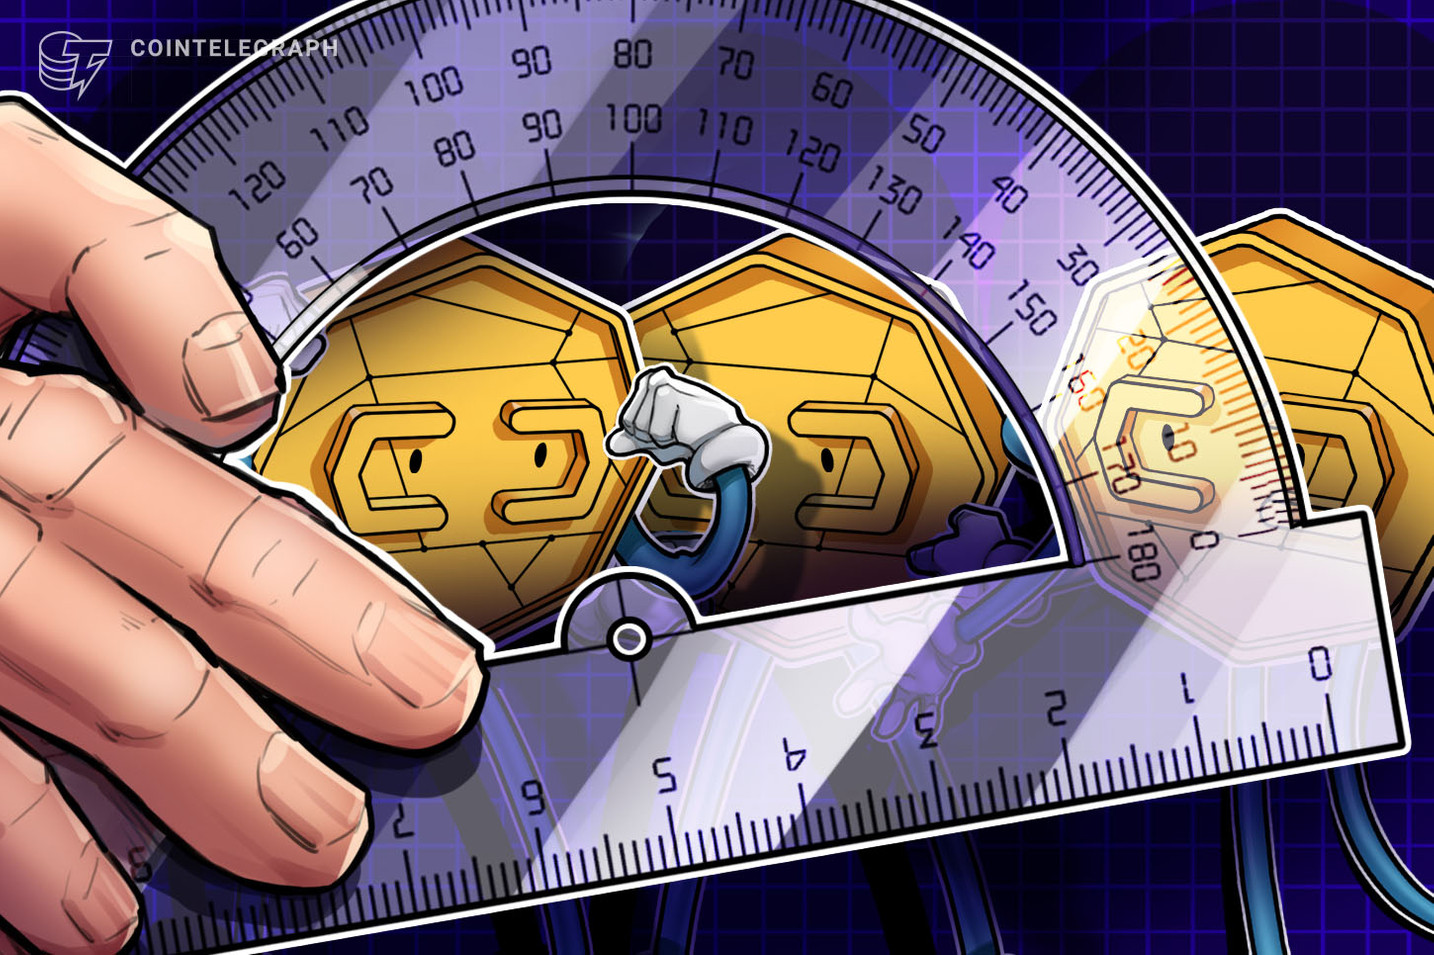 Small-cap altcoins push higher as Bitcoin bulls fight to hold $40,000